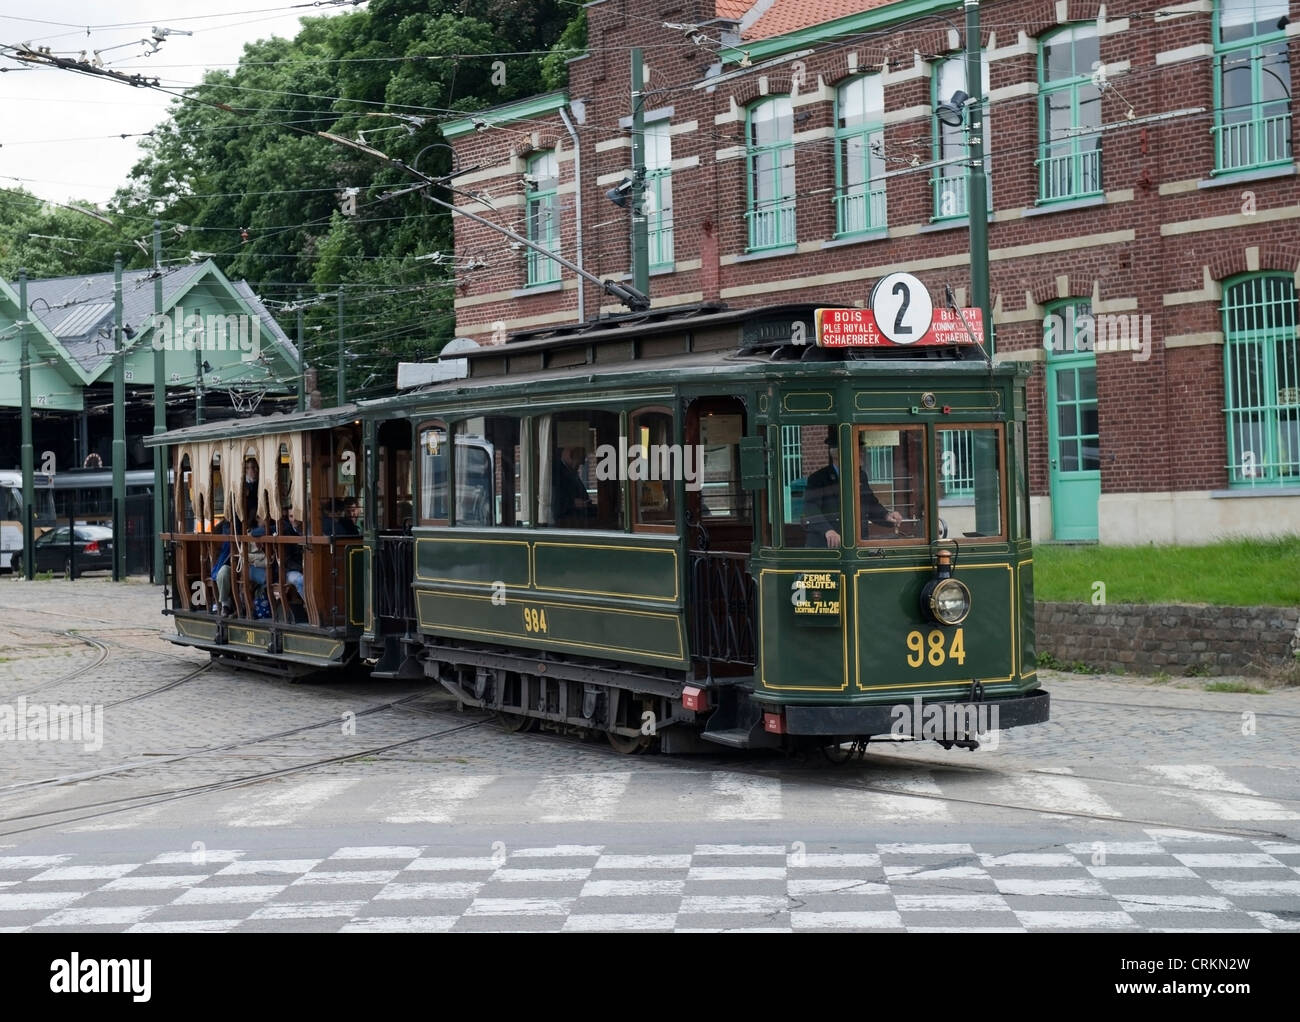 Vintage Tram No.984 with Trailer at The Tram Museum Brussels, Belgium -1 Stock Photo